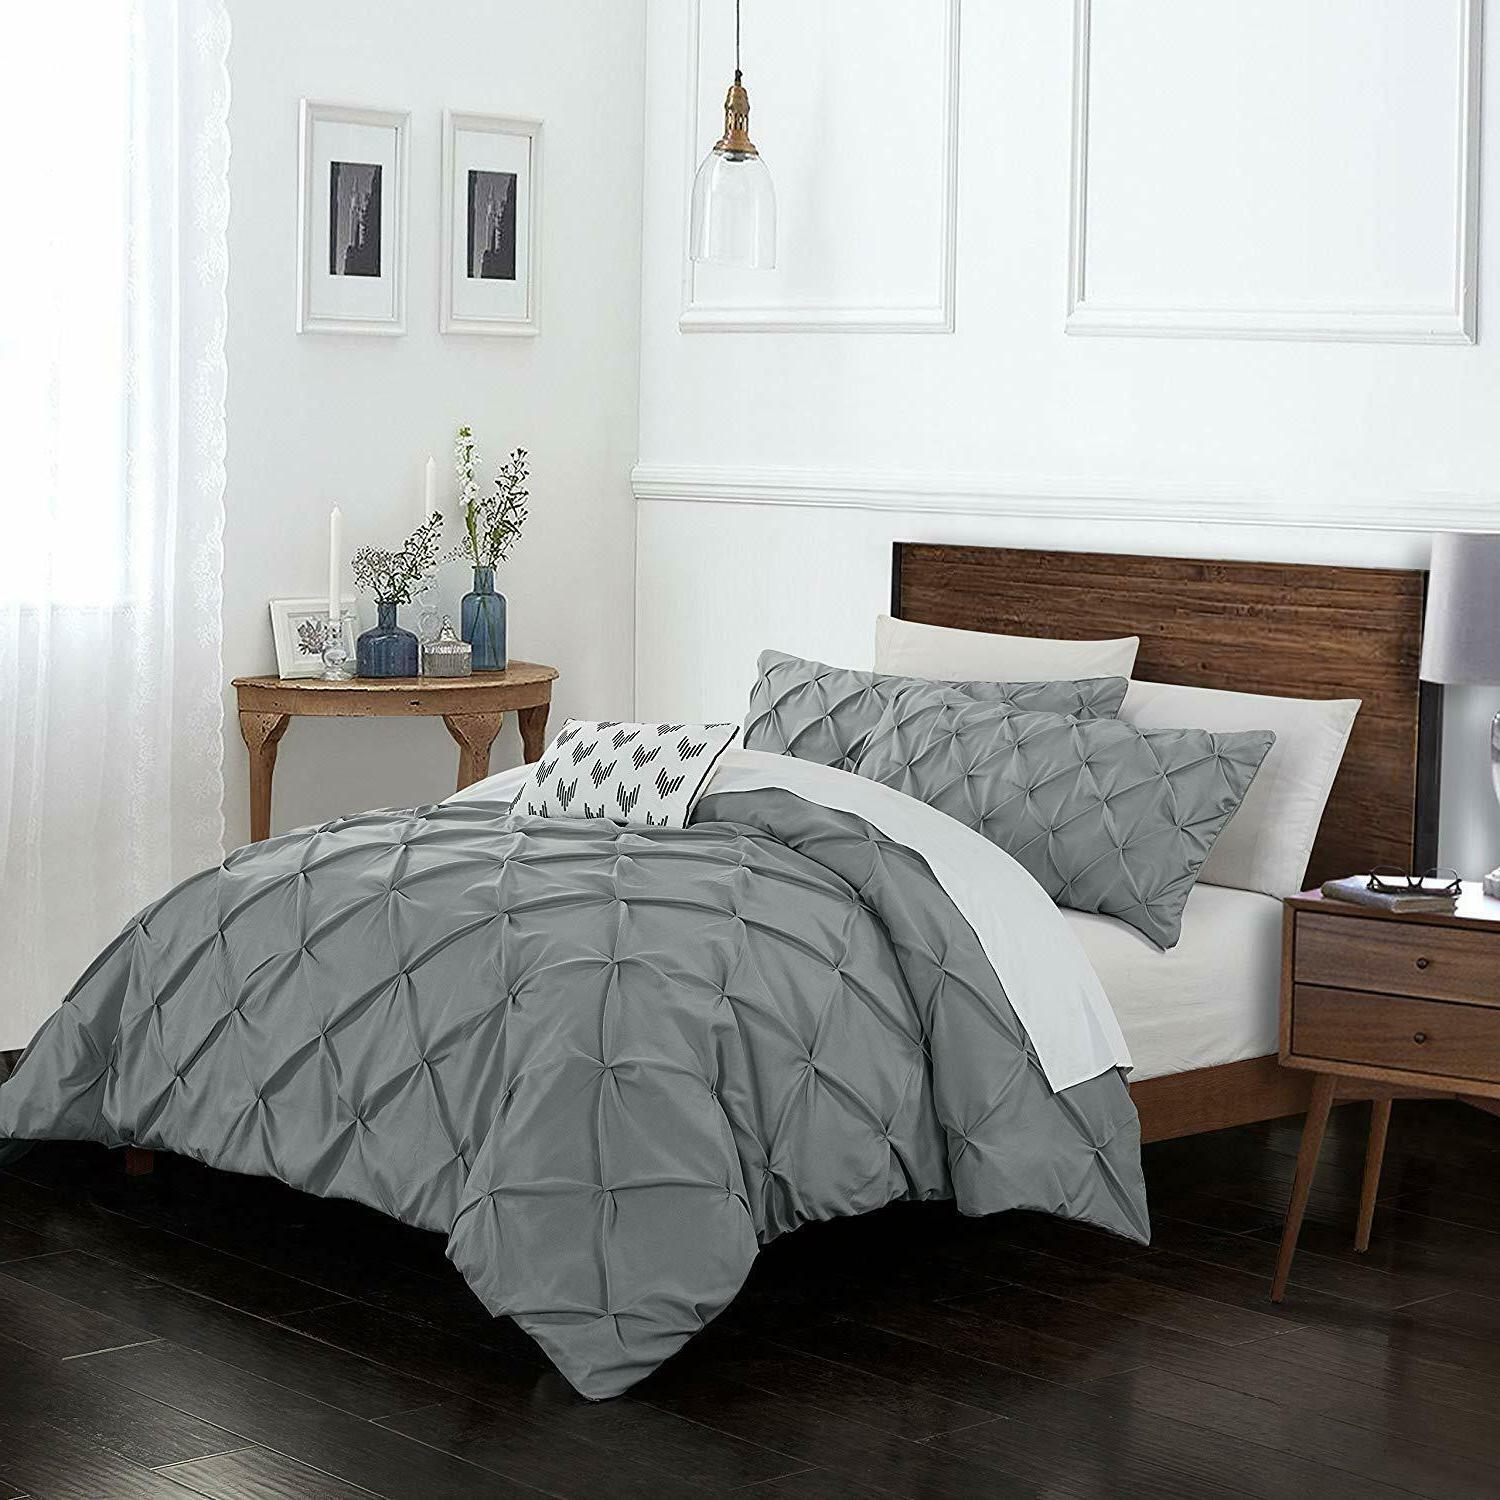 3 Pintuck Cover 1800TC Size , Grey